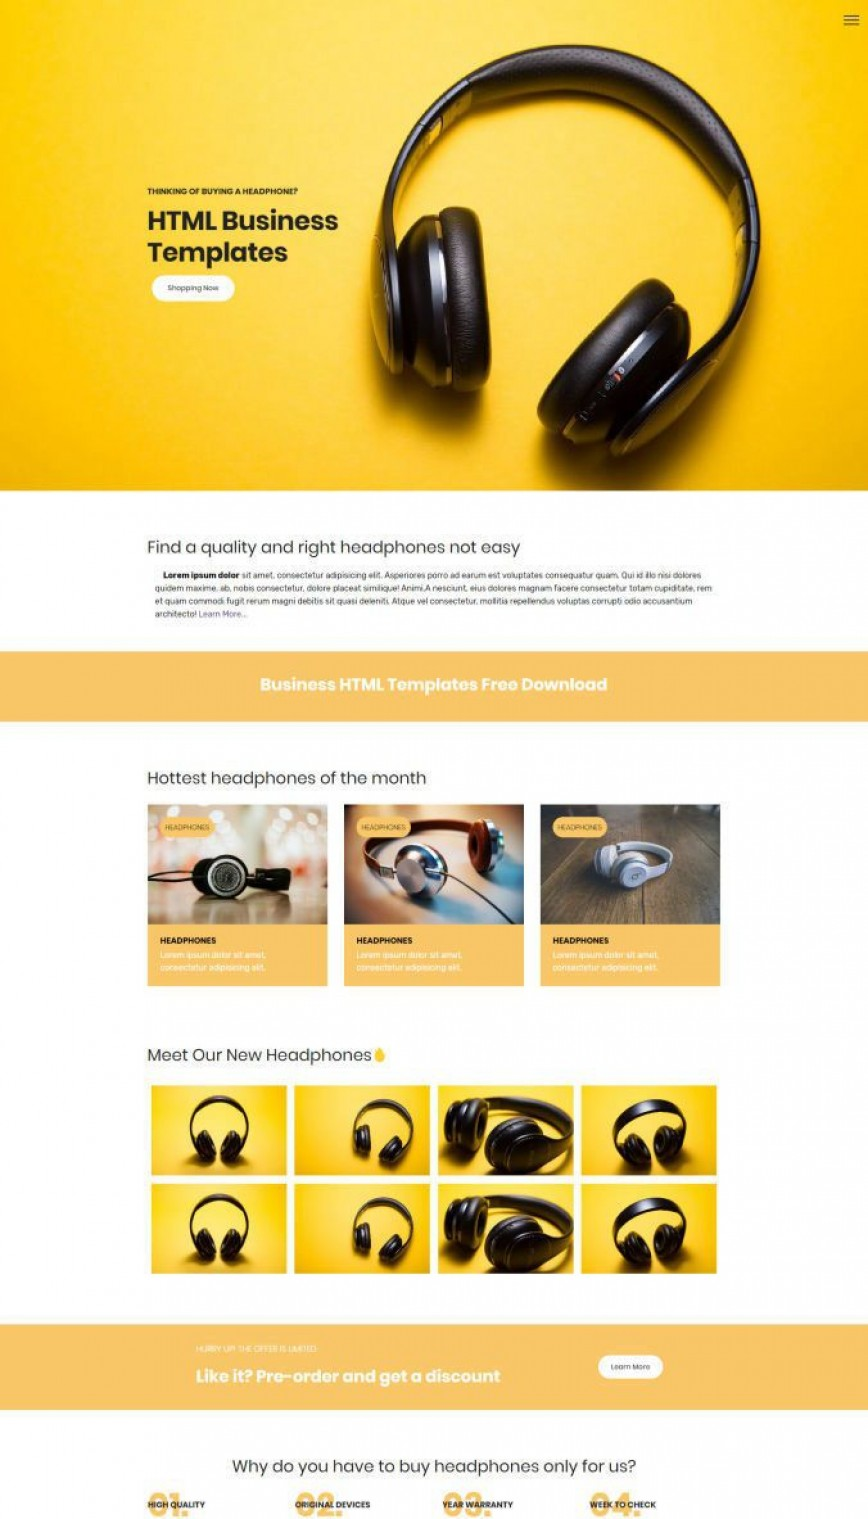 005 Stunning Free Html Template Download Busines Picture  Business Corporate Website And Cs Email